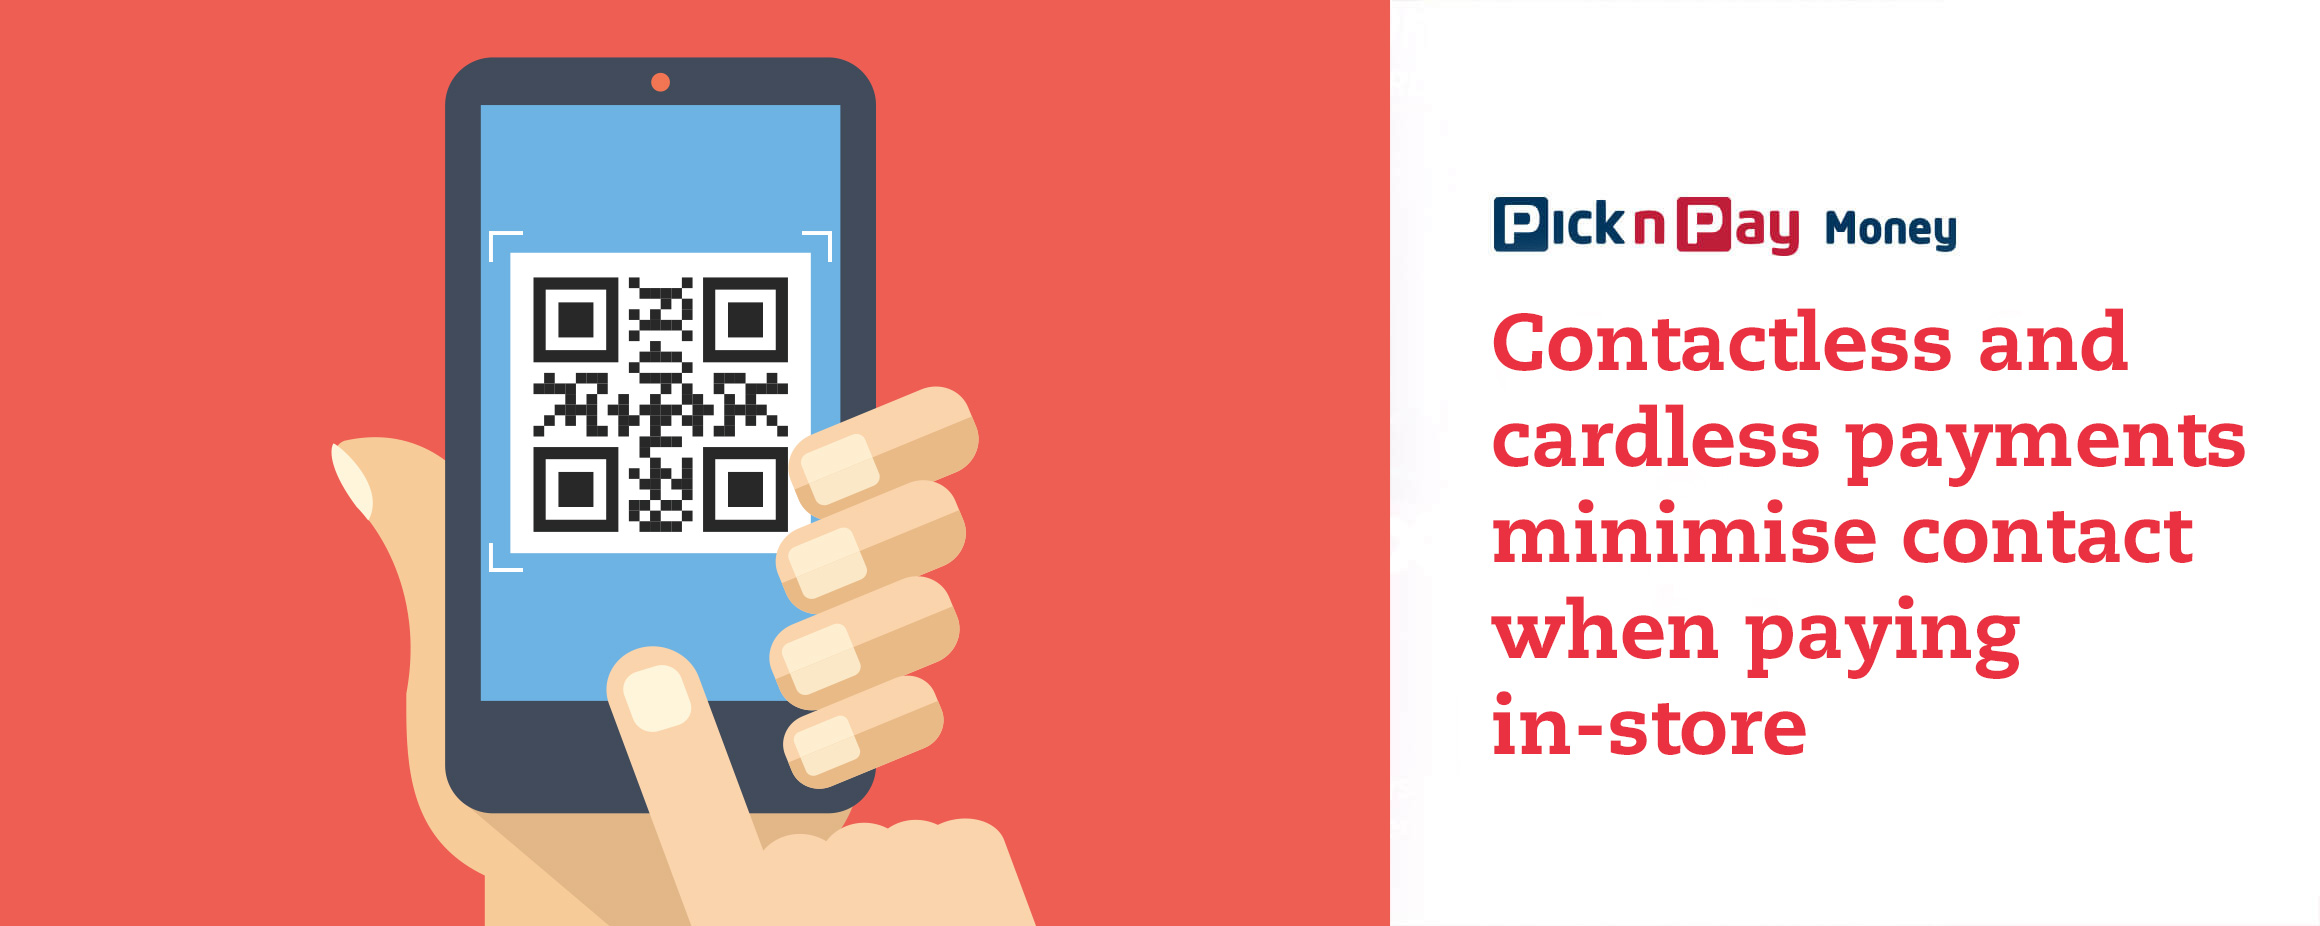 Contactless and cardless payments minimise contact when paying in-store